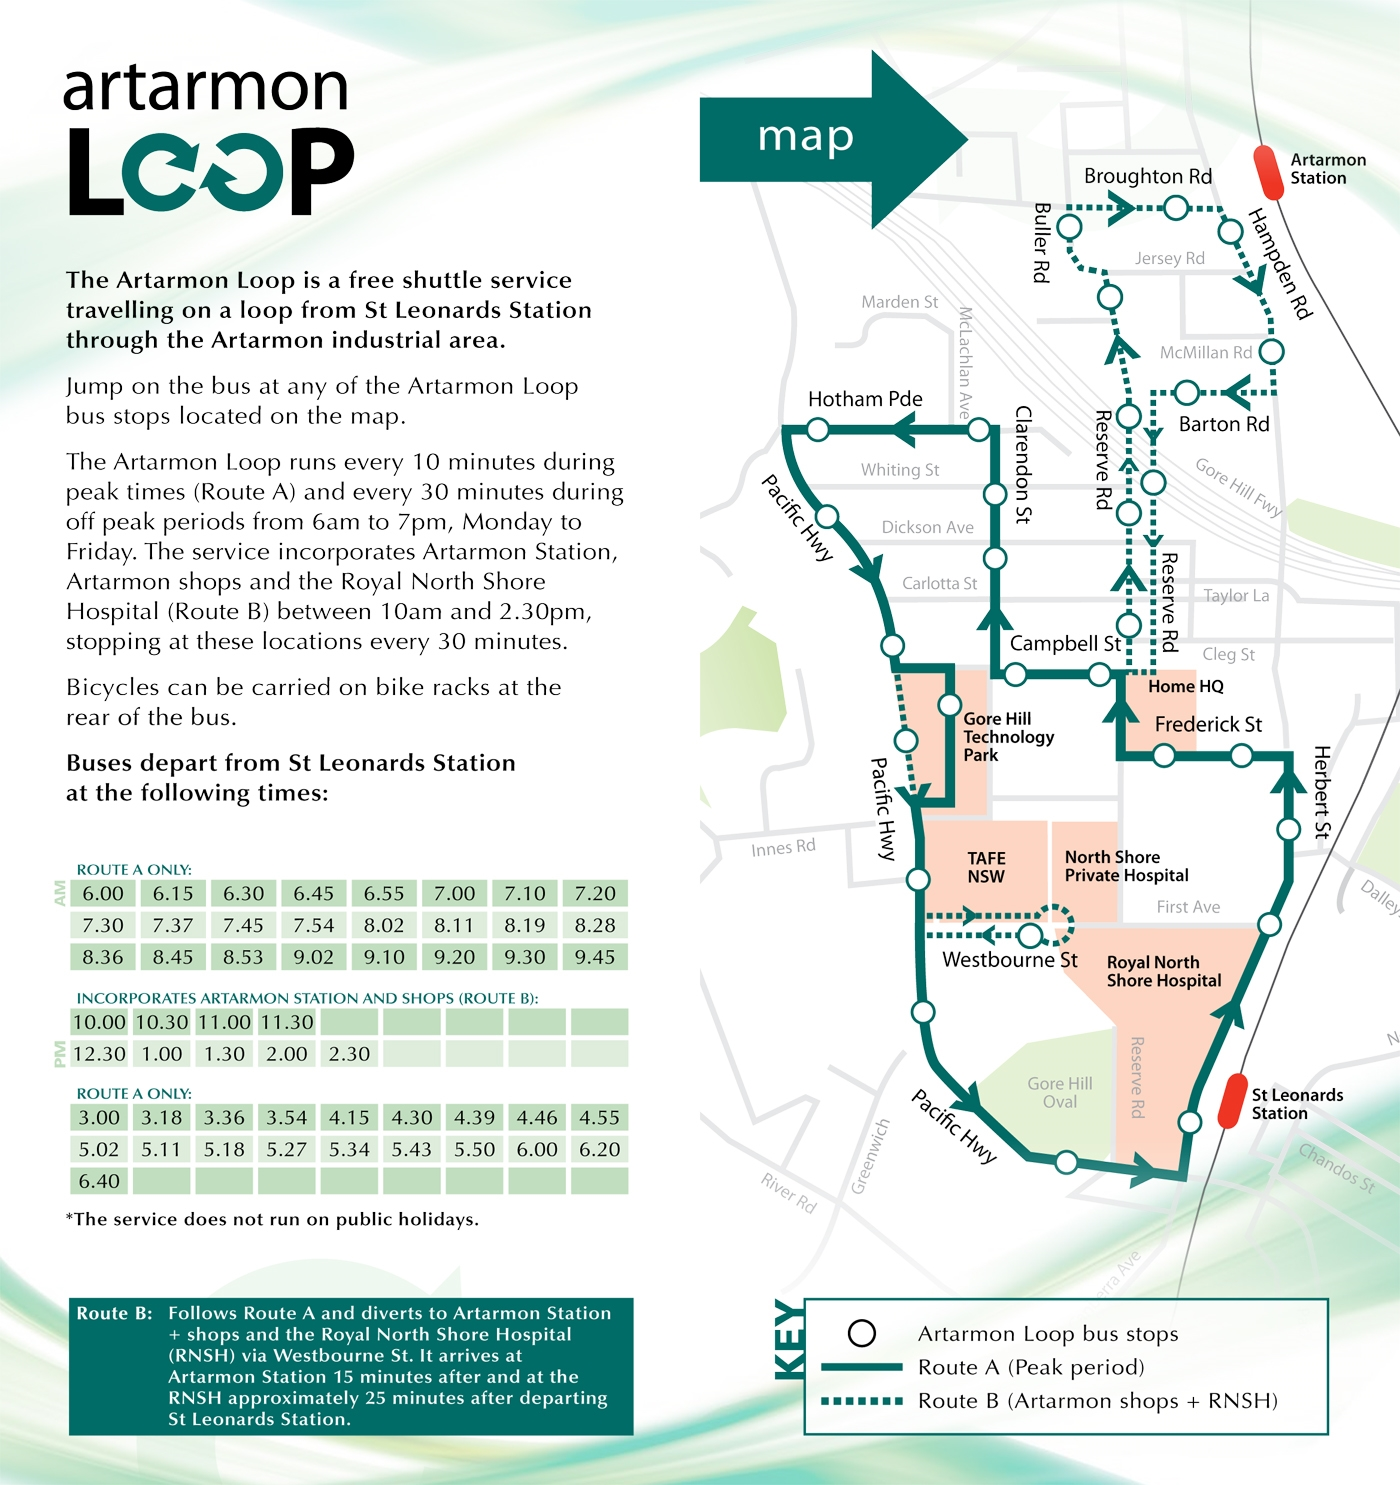 Artarmon-Loop-Map-and-Timetable.jpg